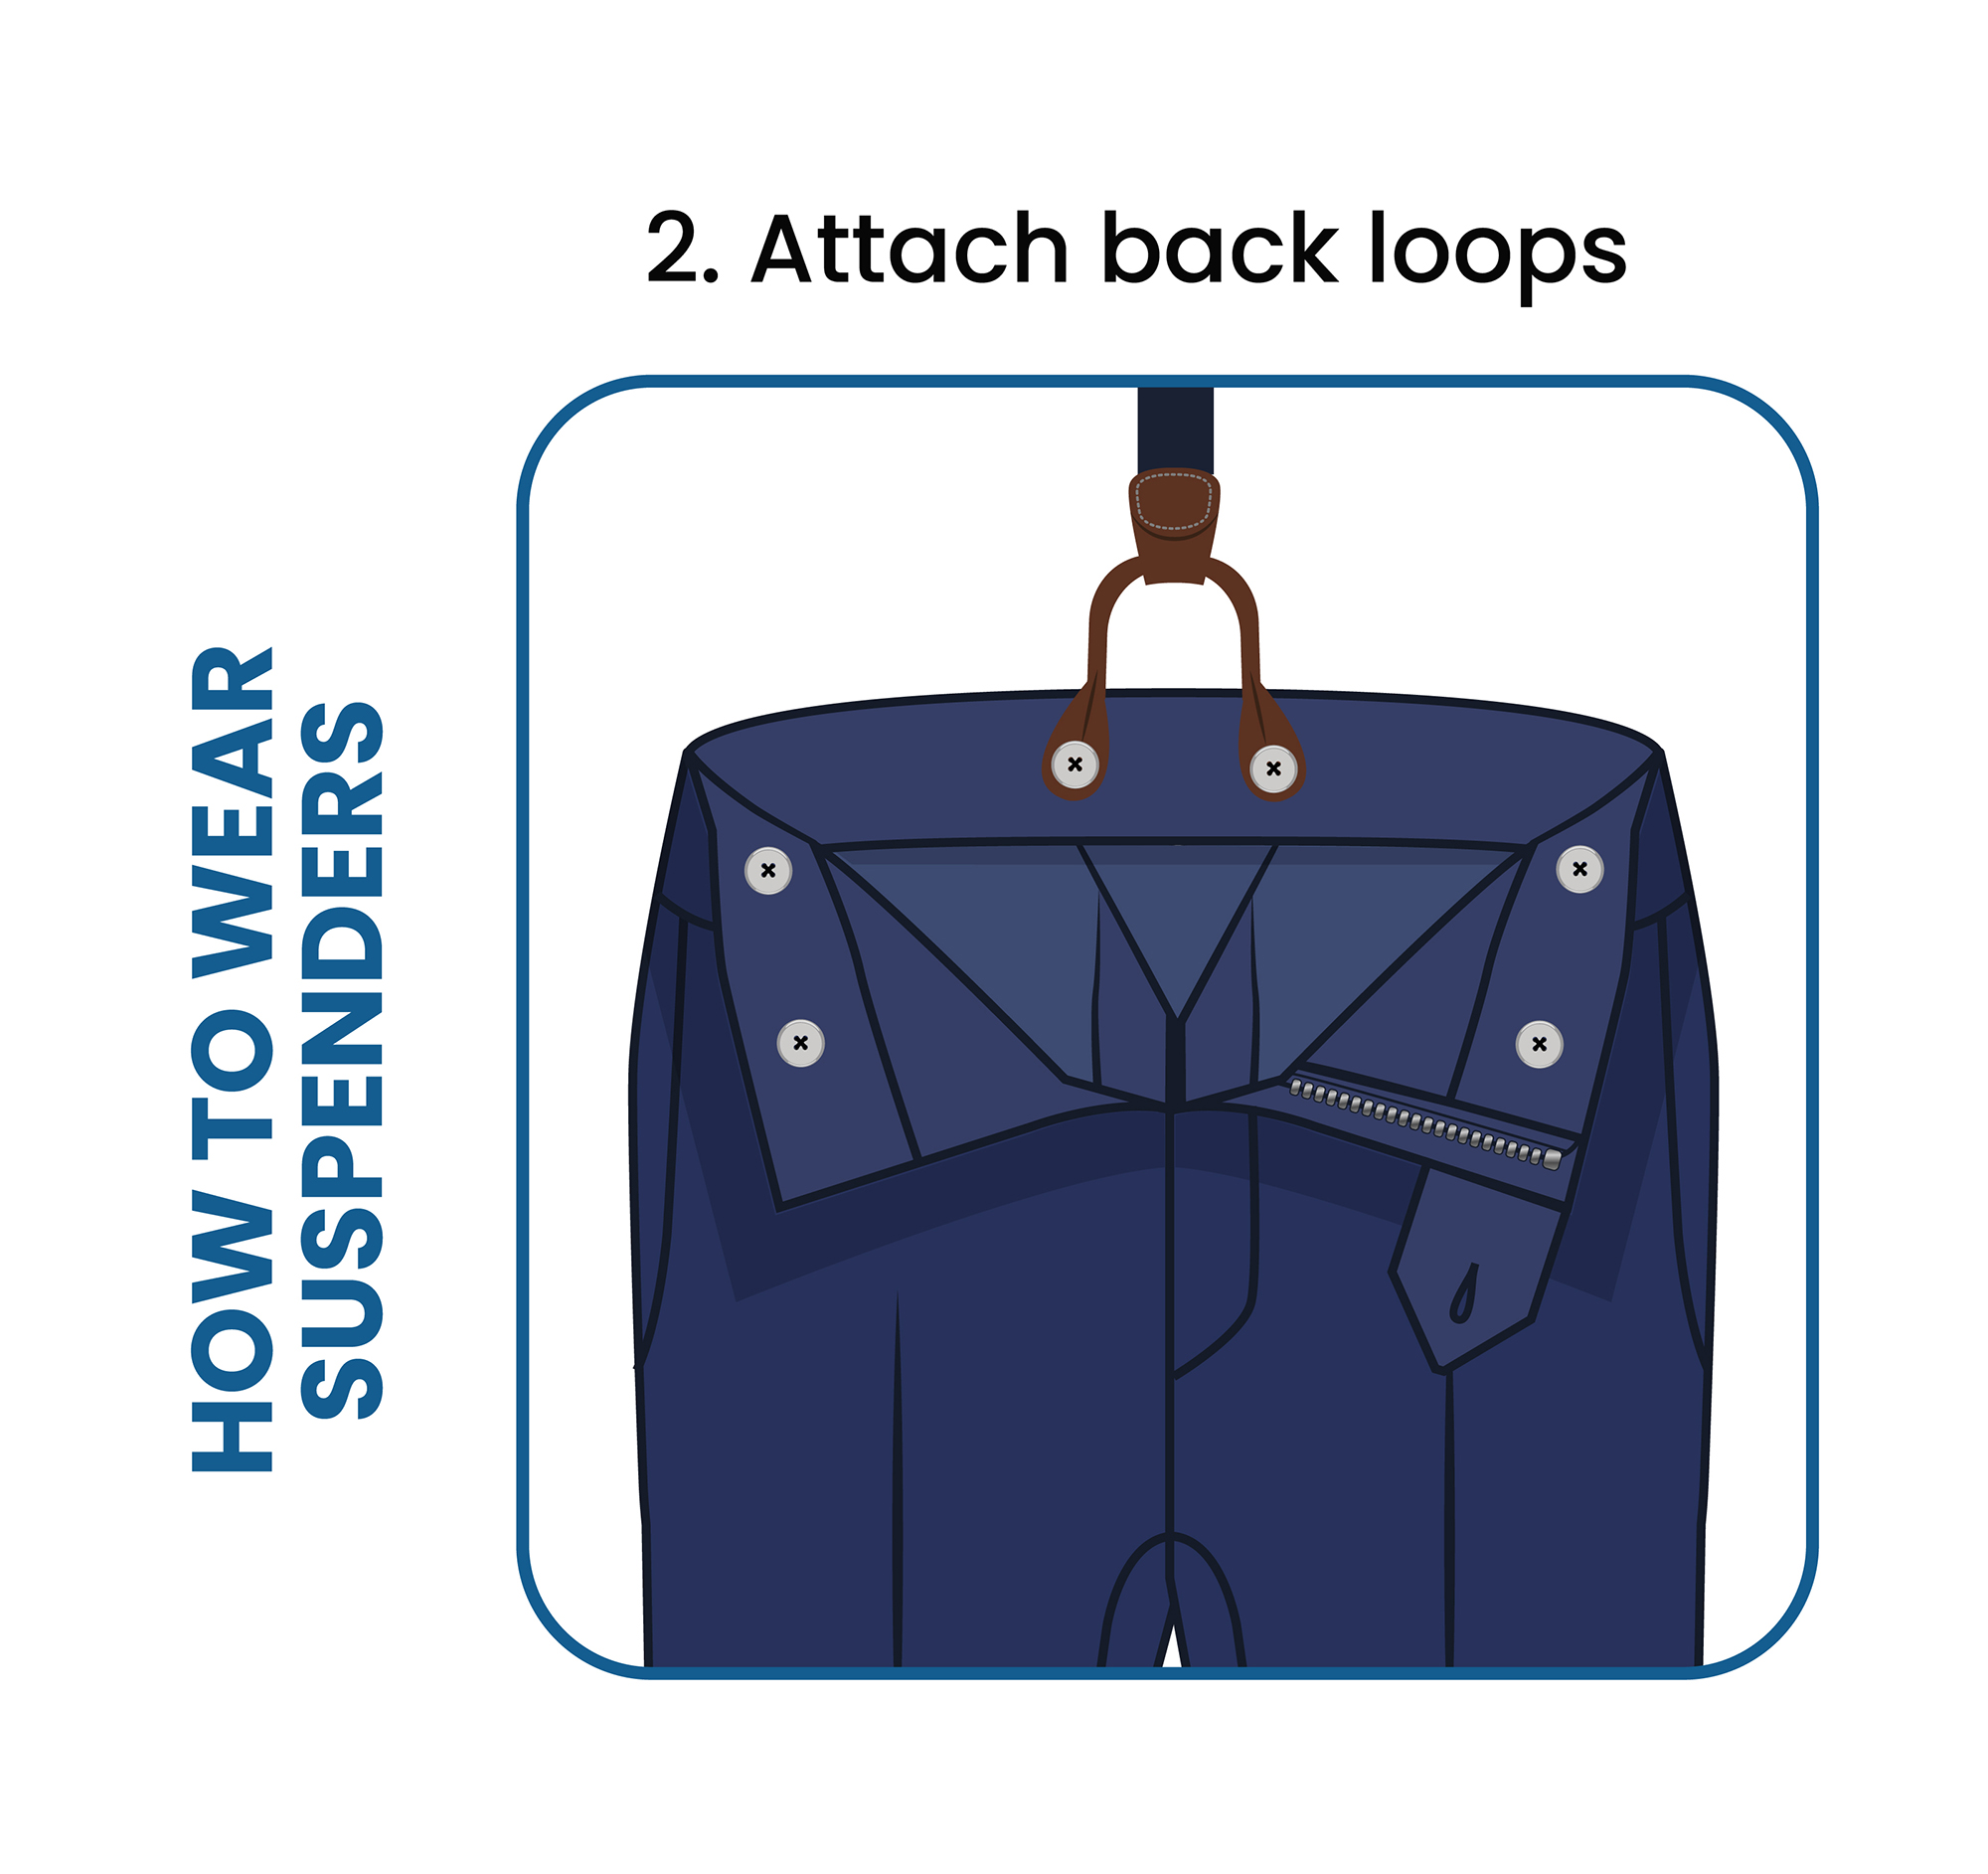 How to put on suspenders step 2: Attach the button tab on the back loops